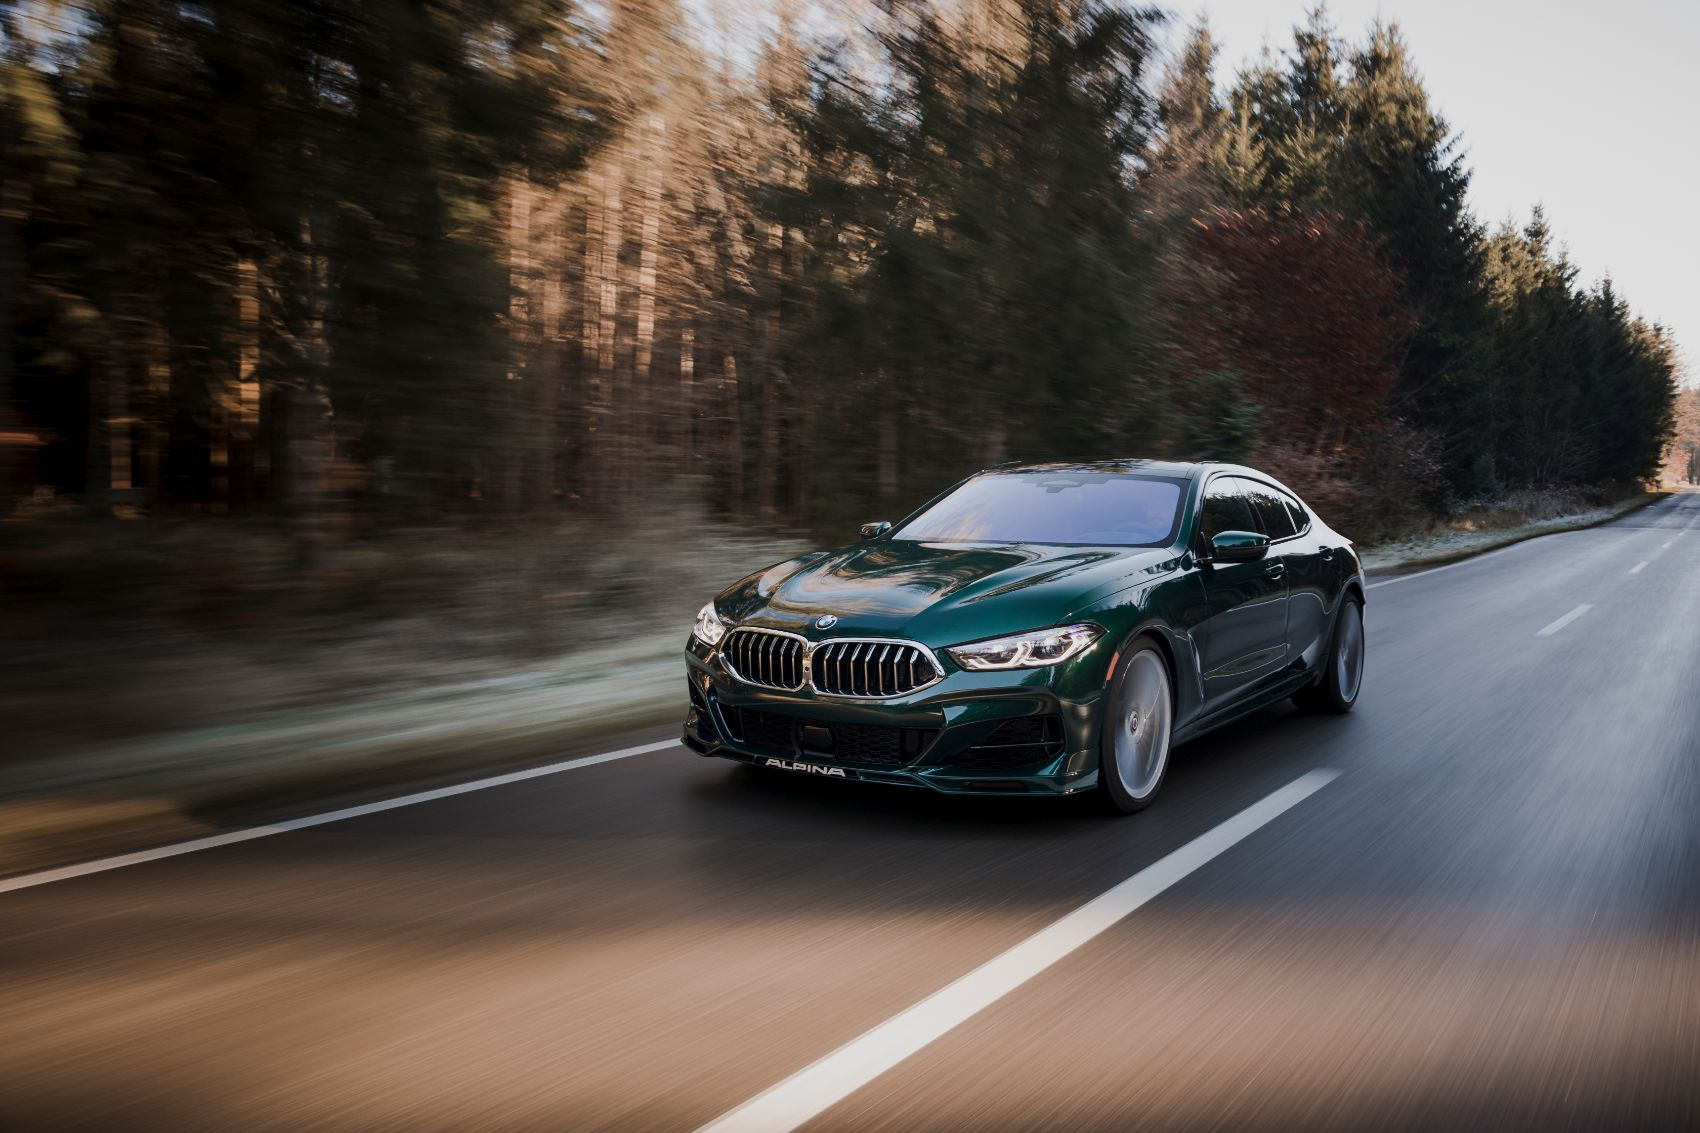 BMW Alpina B8 Gran Coupe: German Muscle At Its Finest